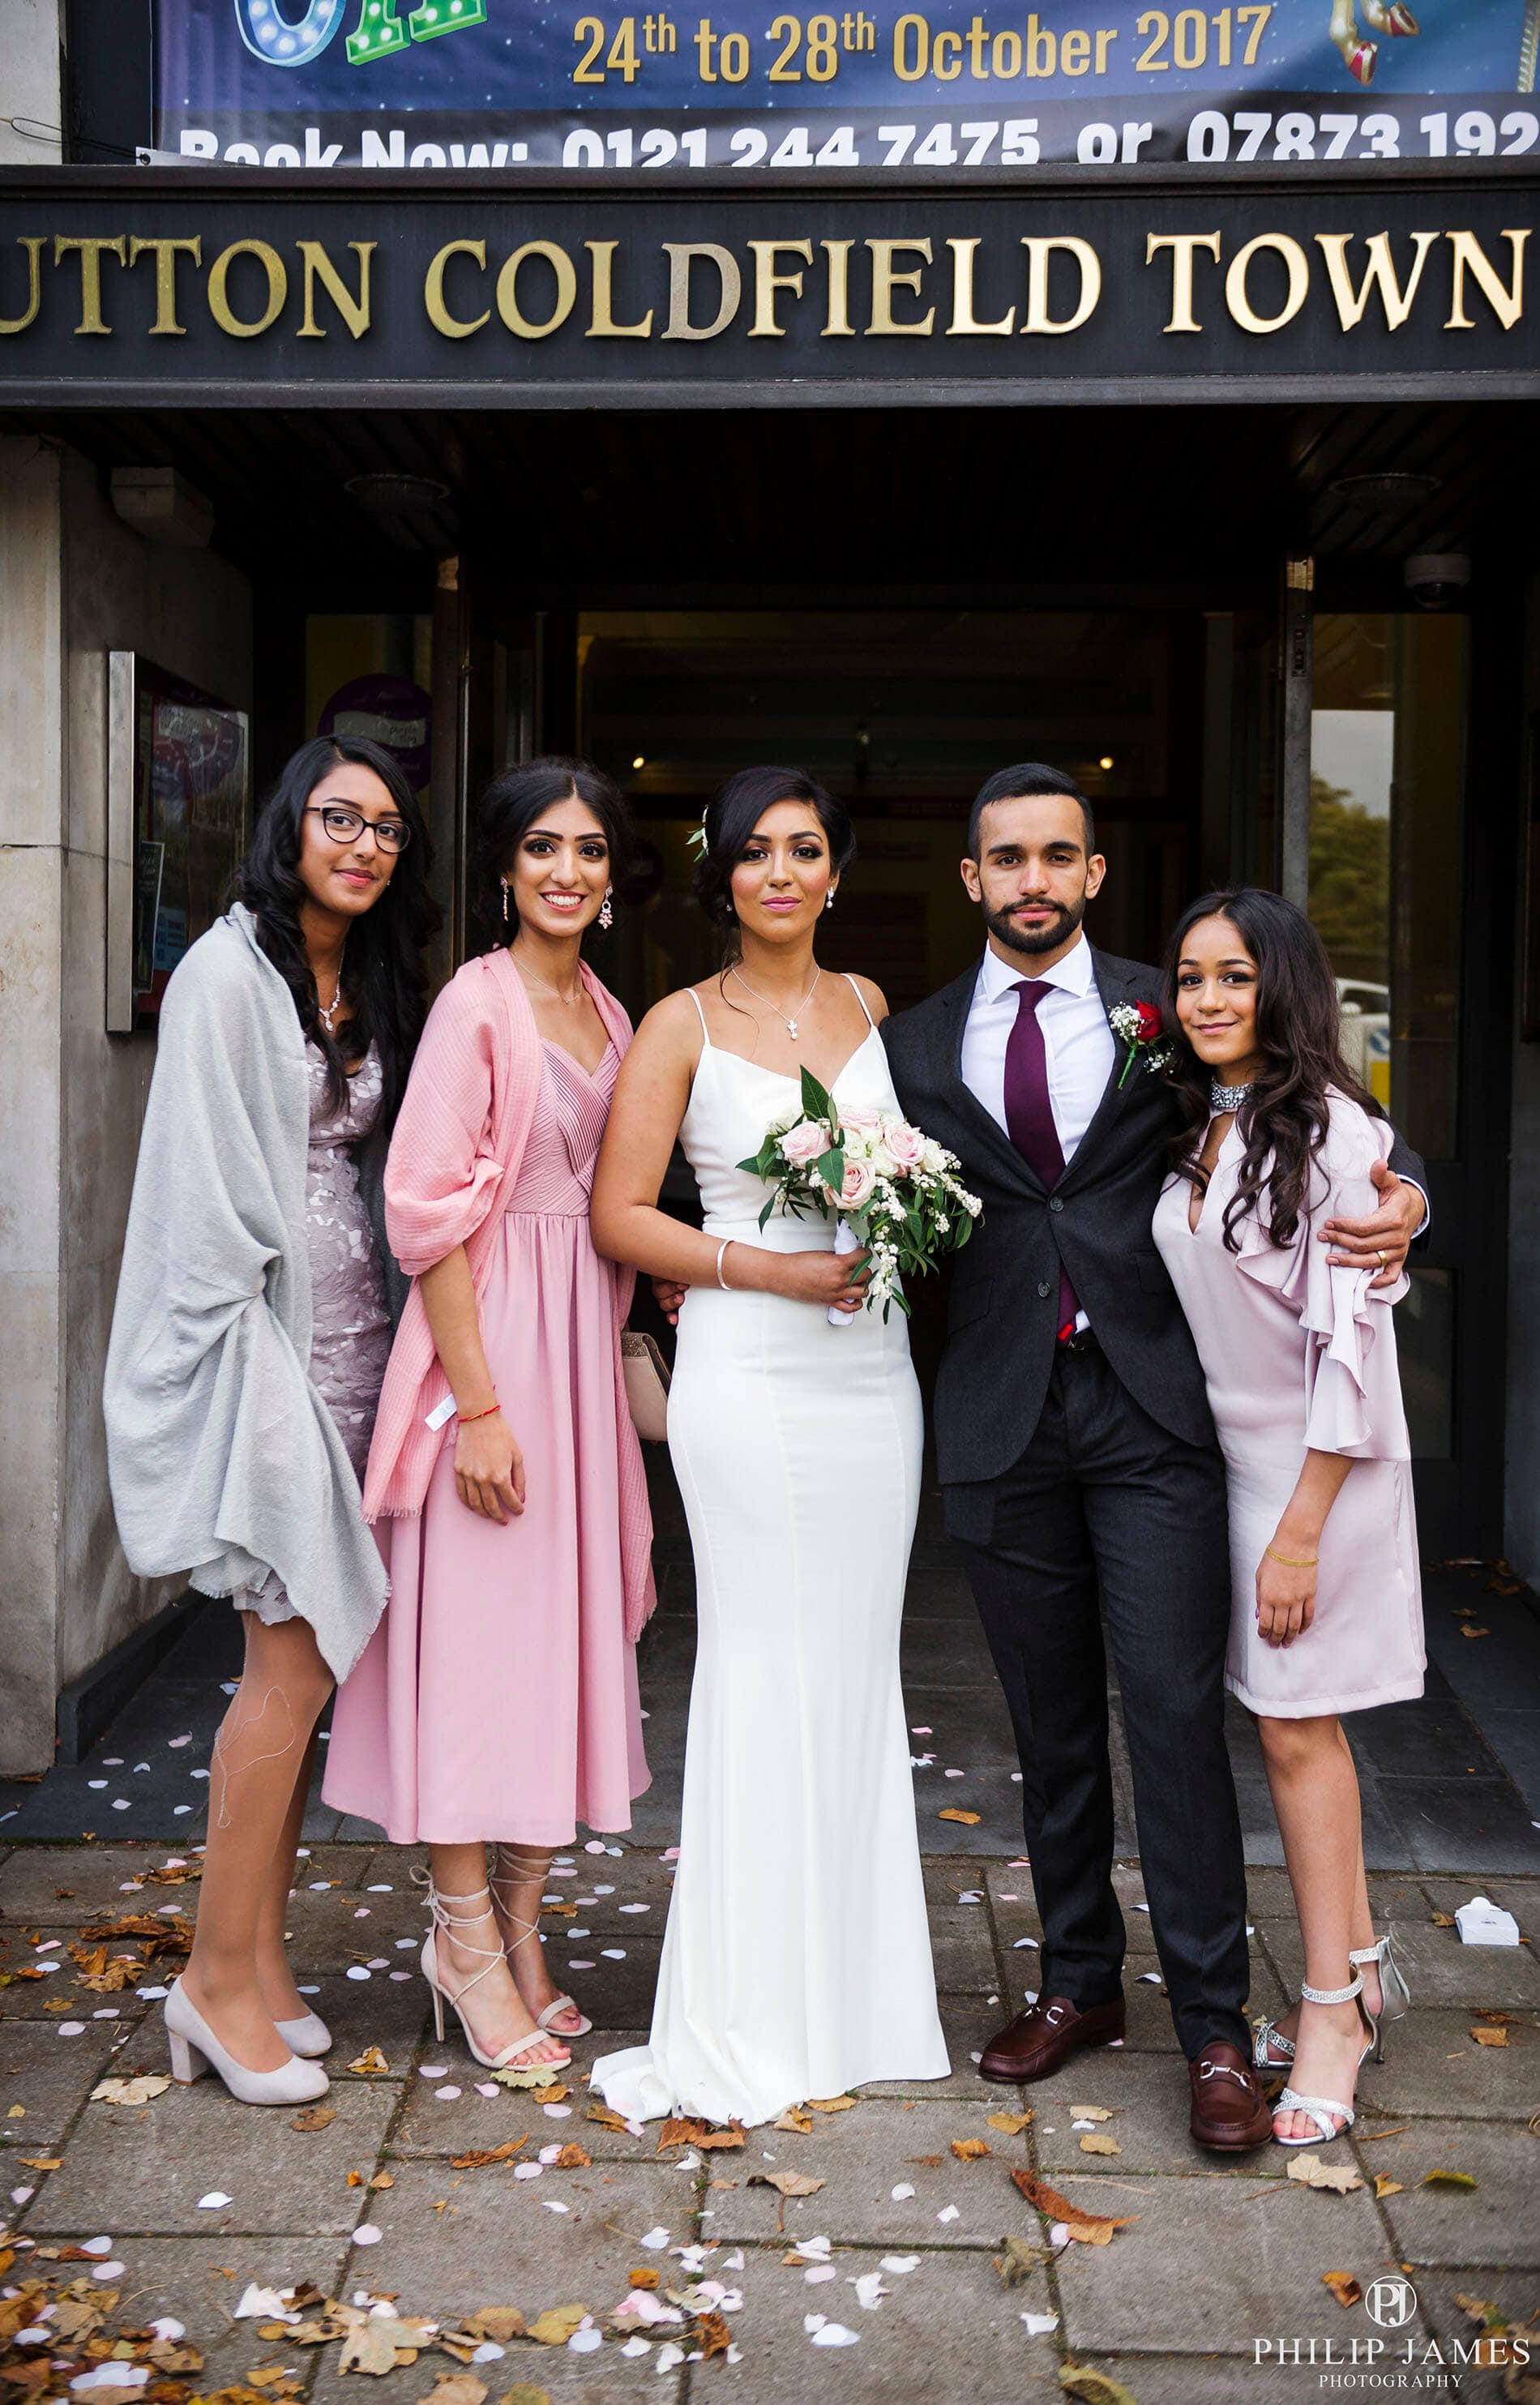 Sutton Coldfield Town Hall wedding photographer | Philip James Photography